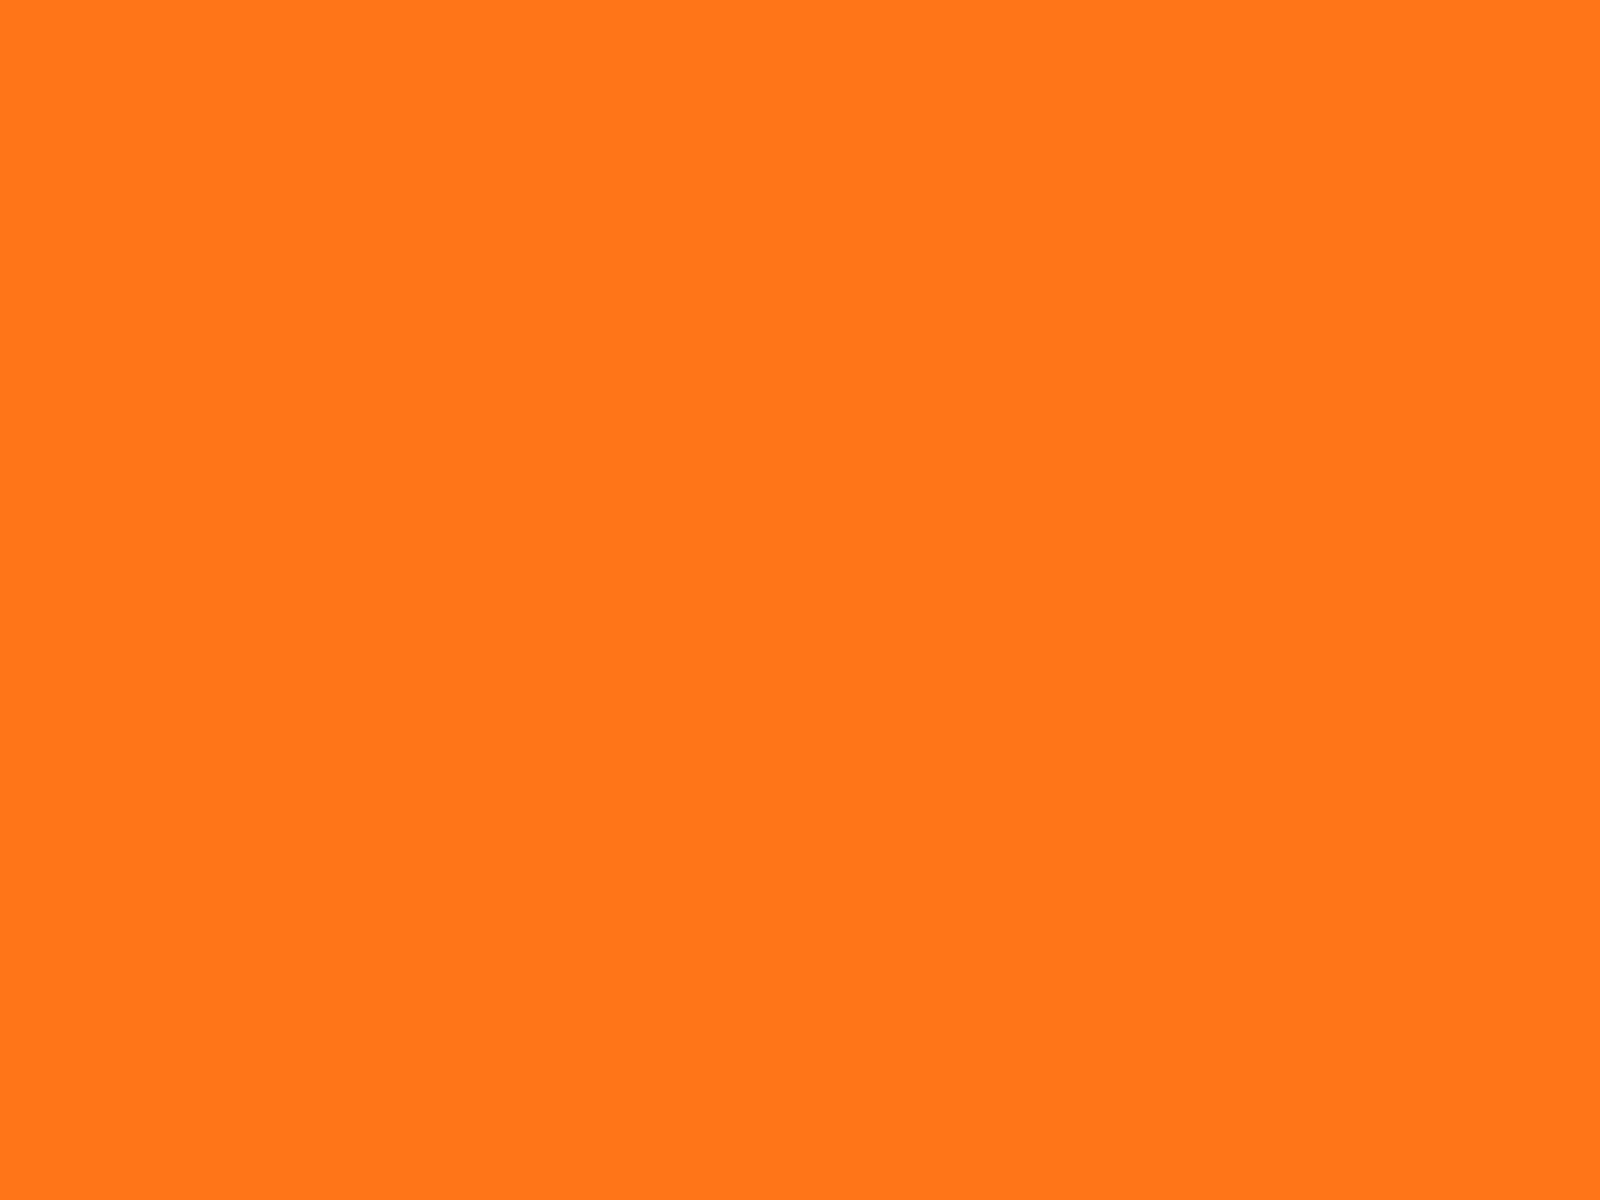 1600x1200 Pumpkin Solid Color Background